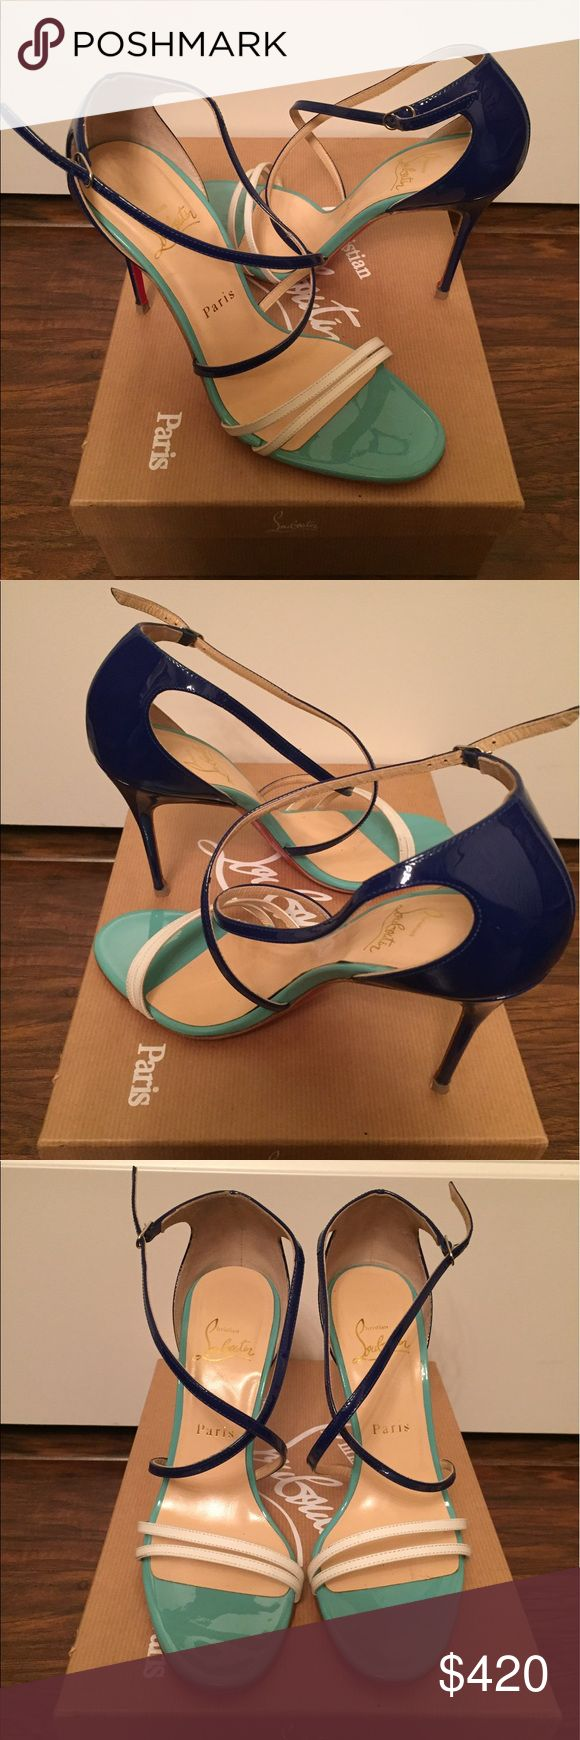 Christian Louboutin Multicolor Sandals Gwynitta 100mm heel blue/white/turquoise Sandals; made in Italy; size 38EU. Gently worn last summer, and well taken care of. Perfect fit for US size 7-7.5. Original dust bag. Christian Louboutin Shoes Sandals